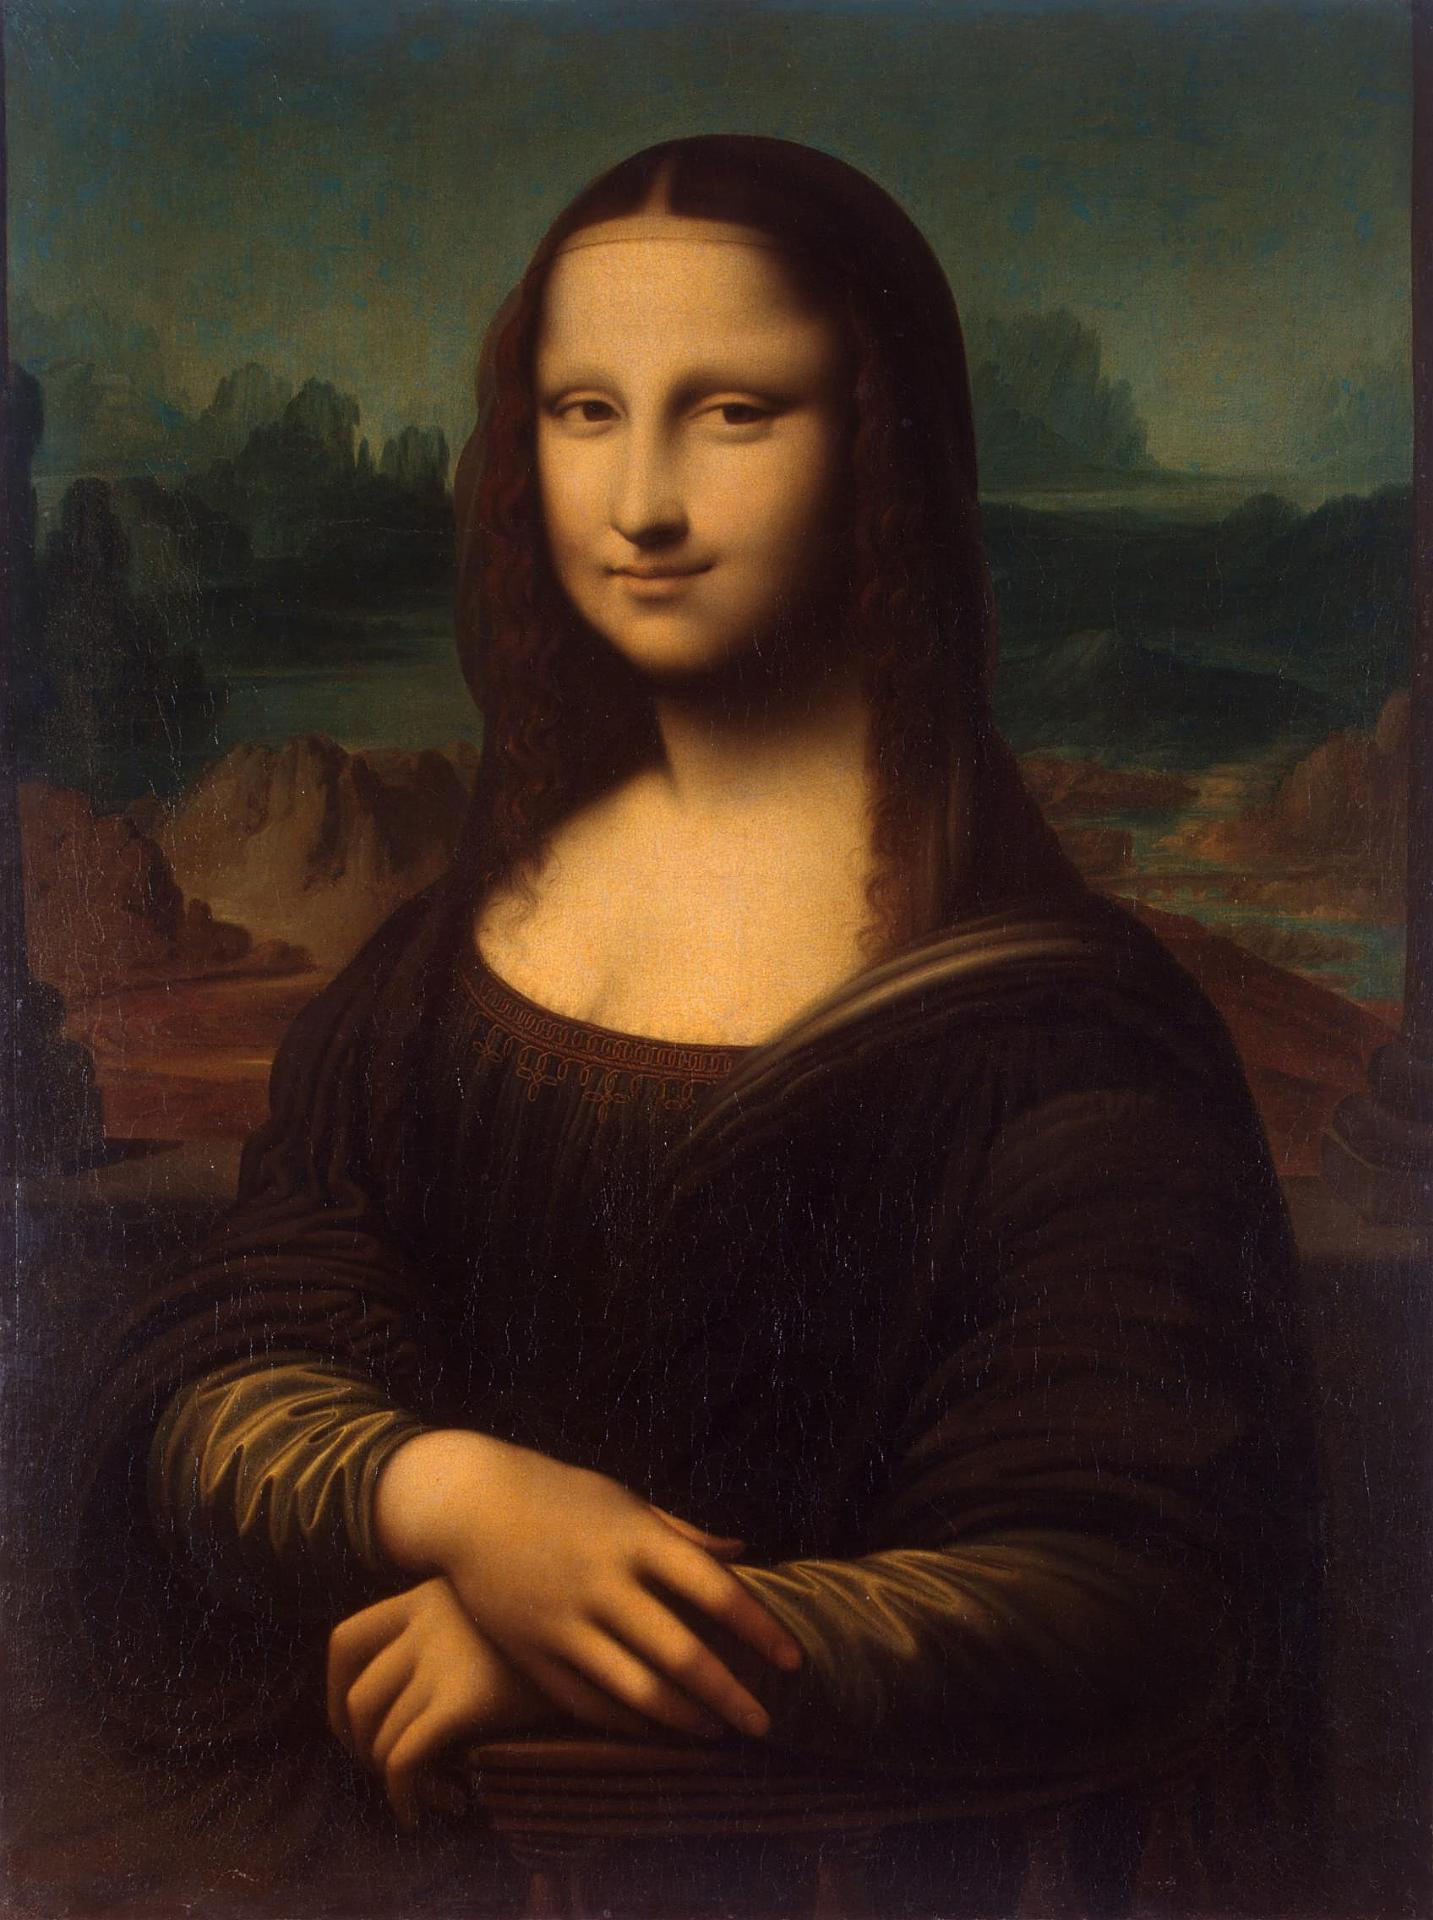 mona lisa on